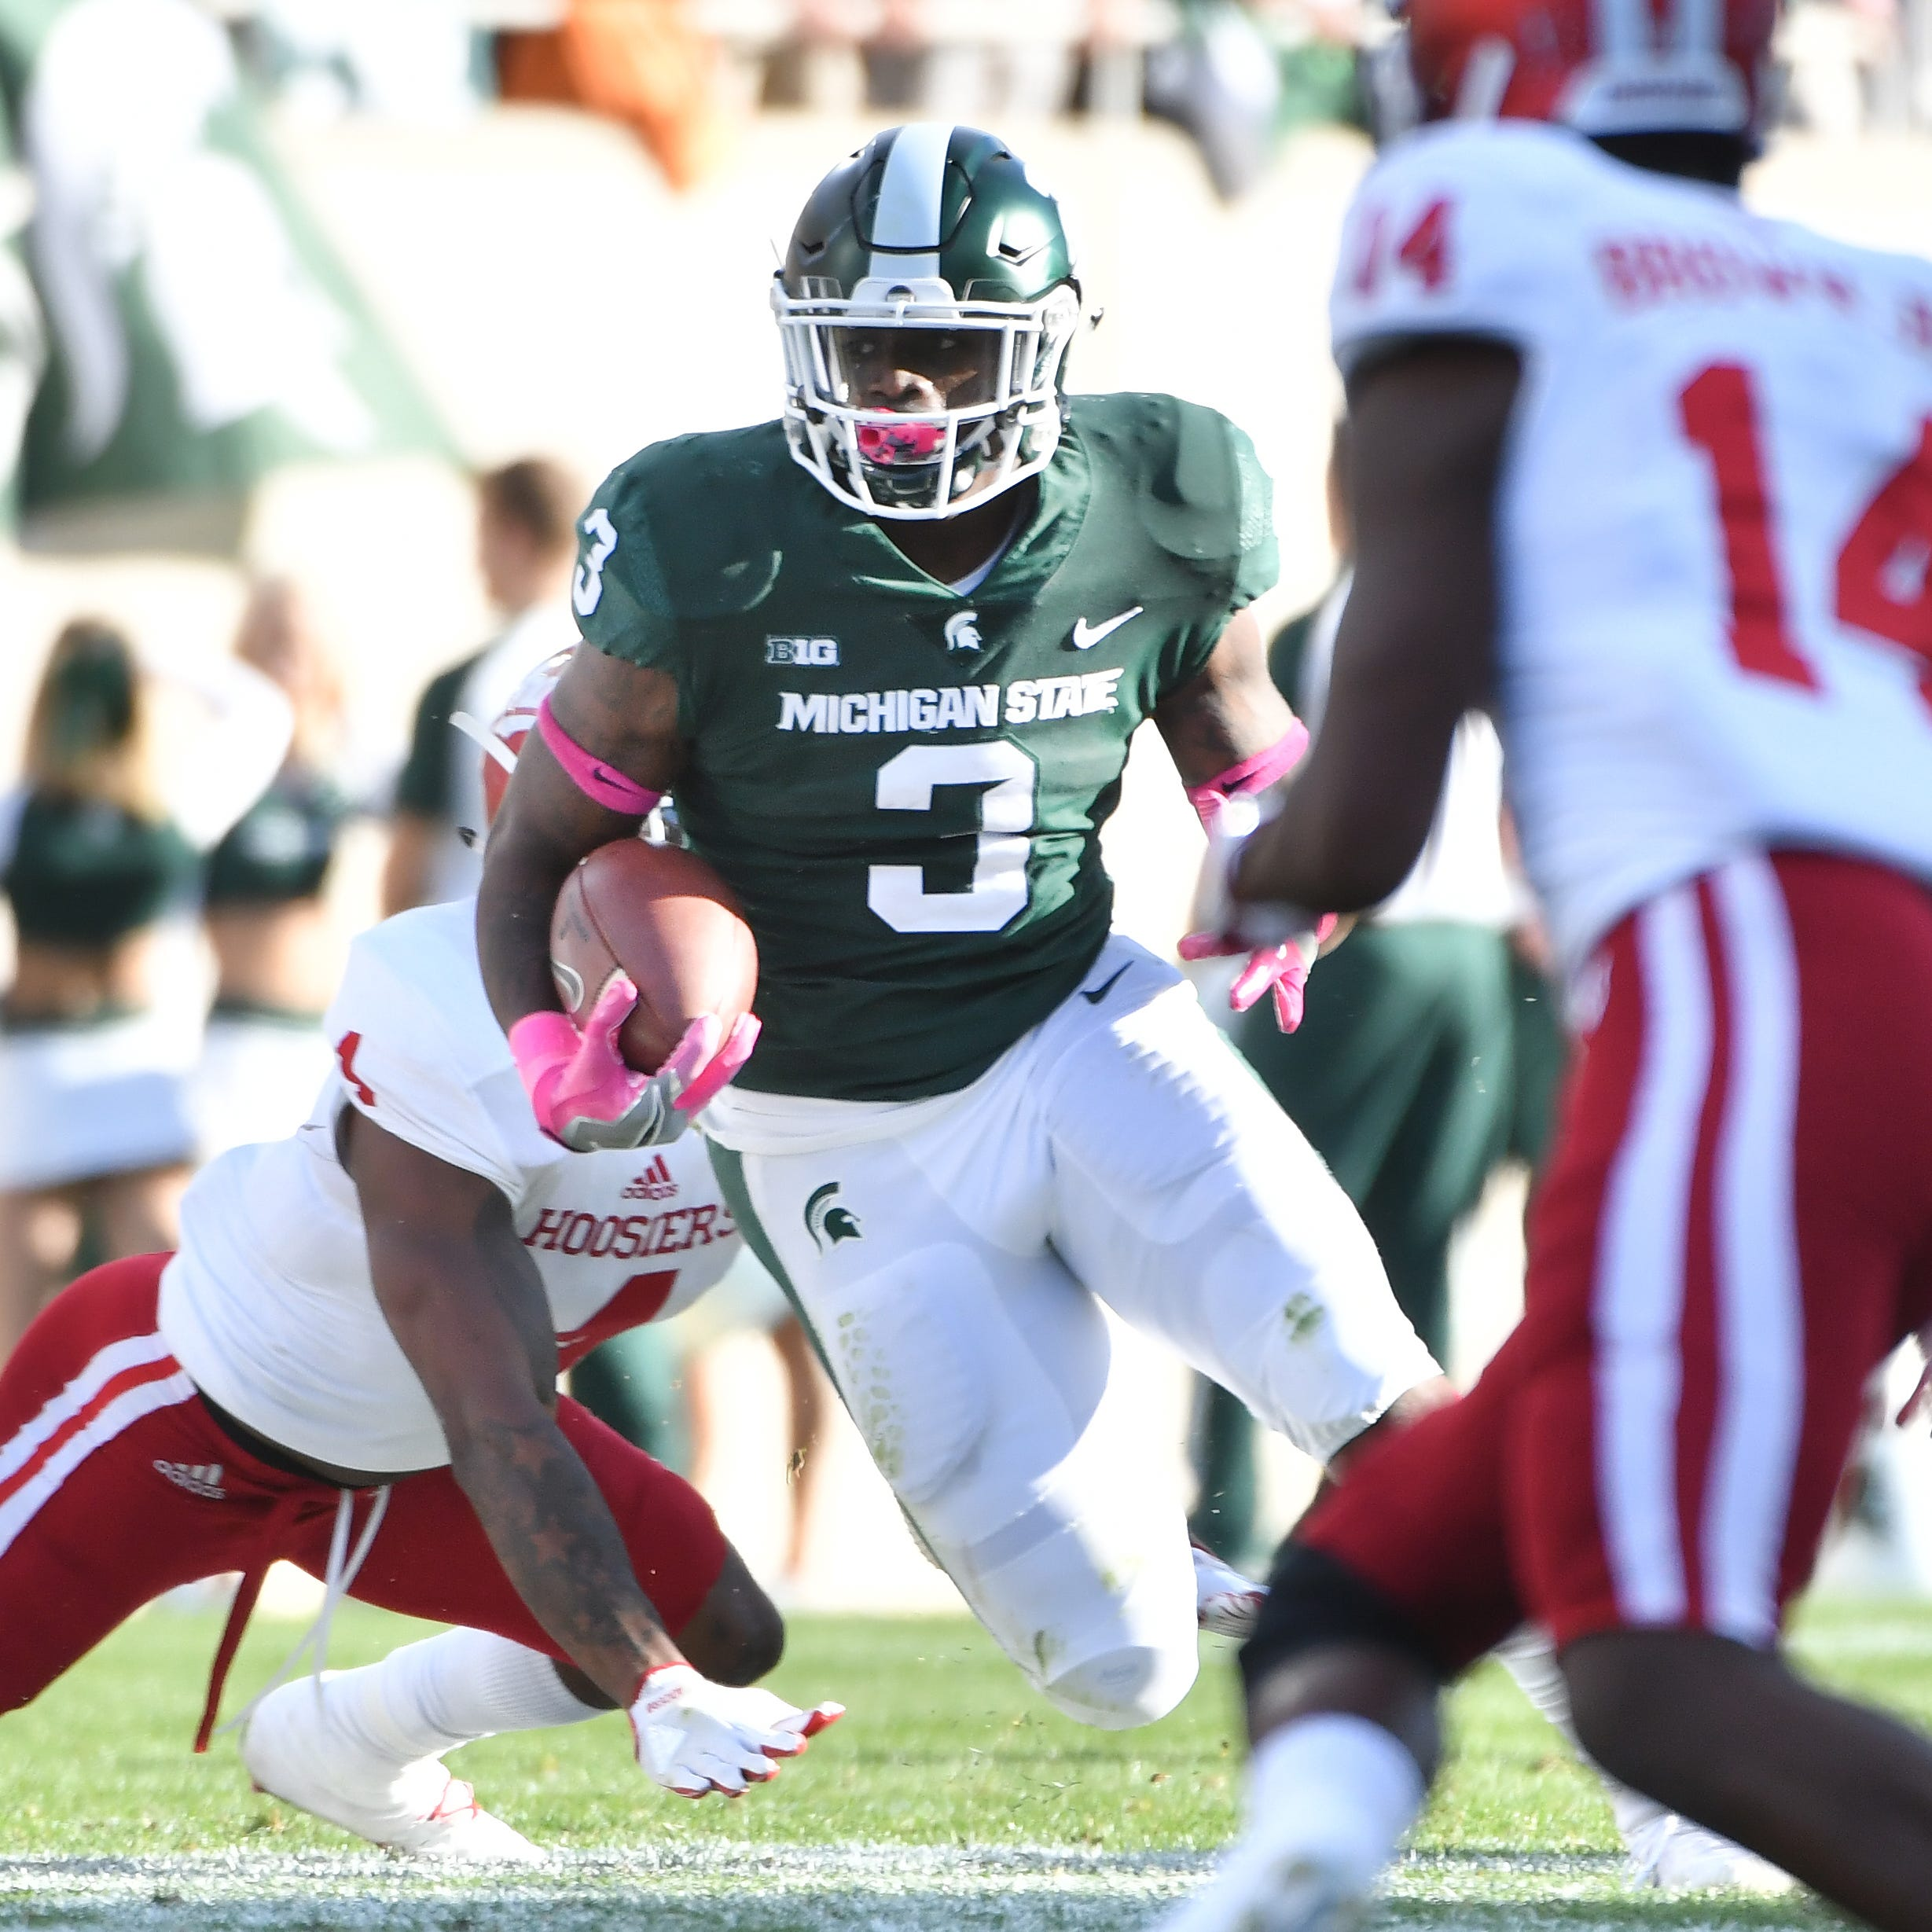 Browns waive former Michigan State running back LJ Scott